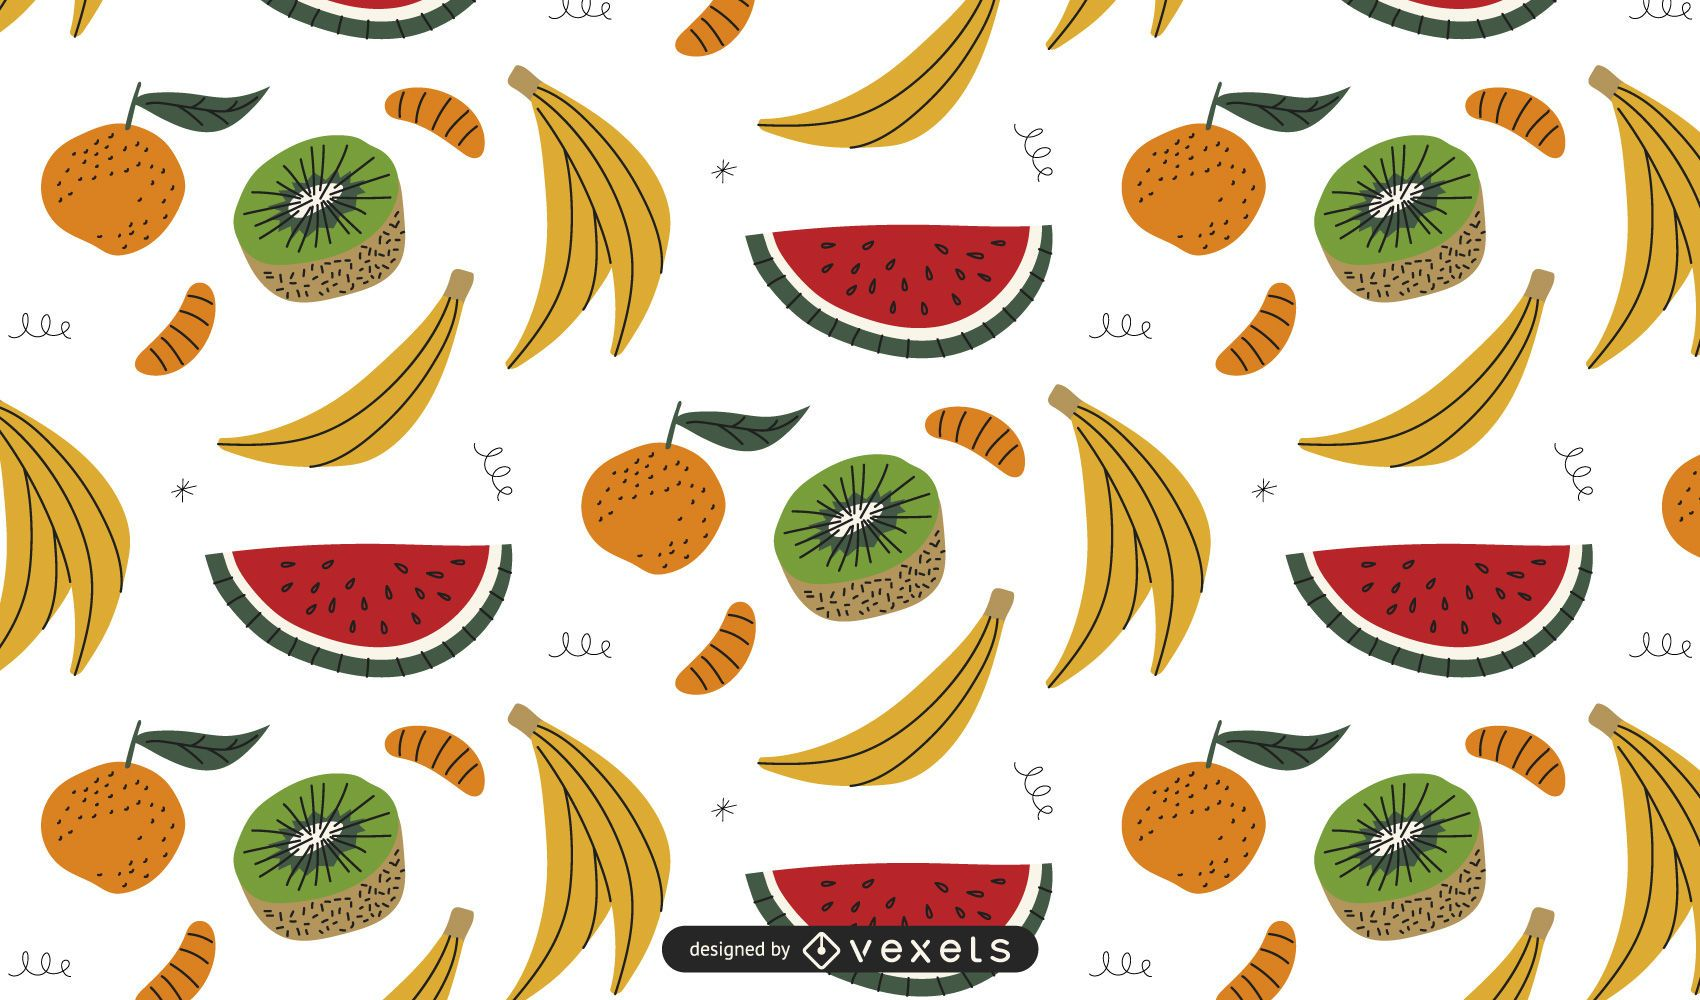 Colored fruits pattern design